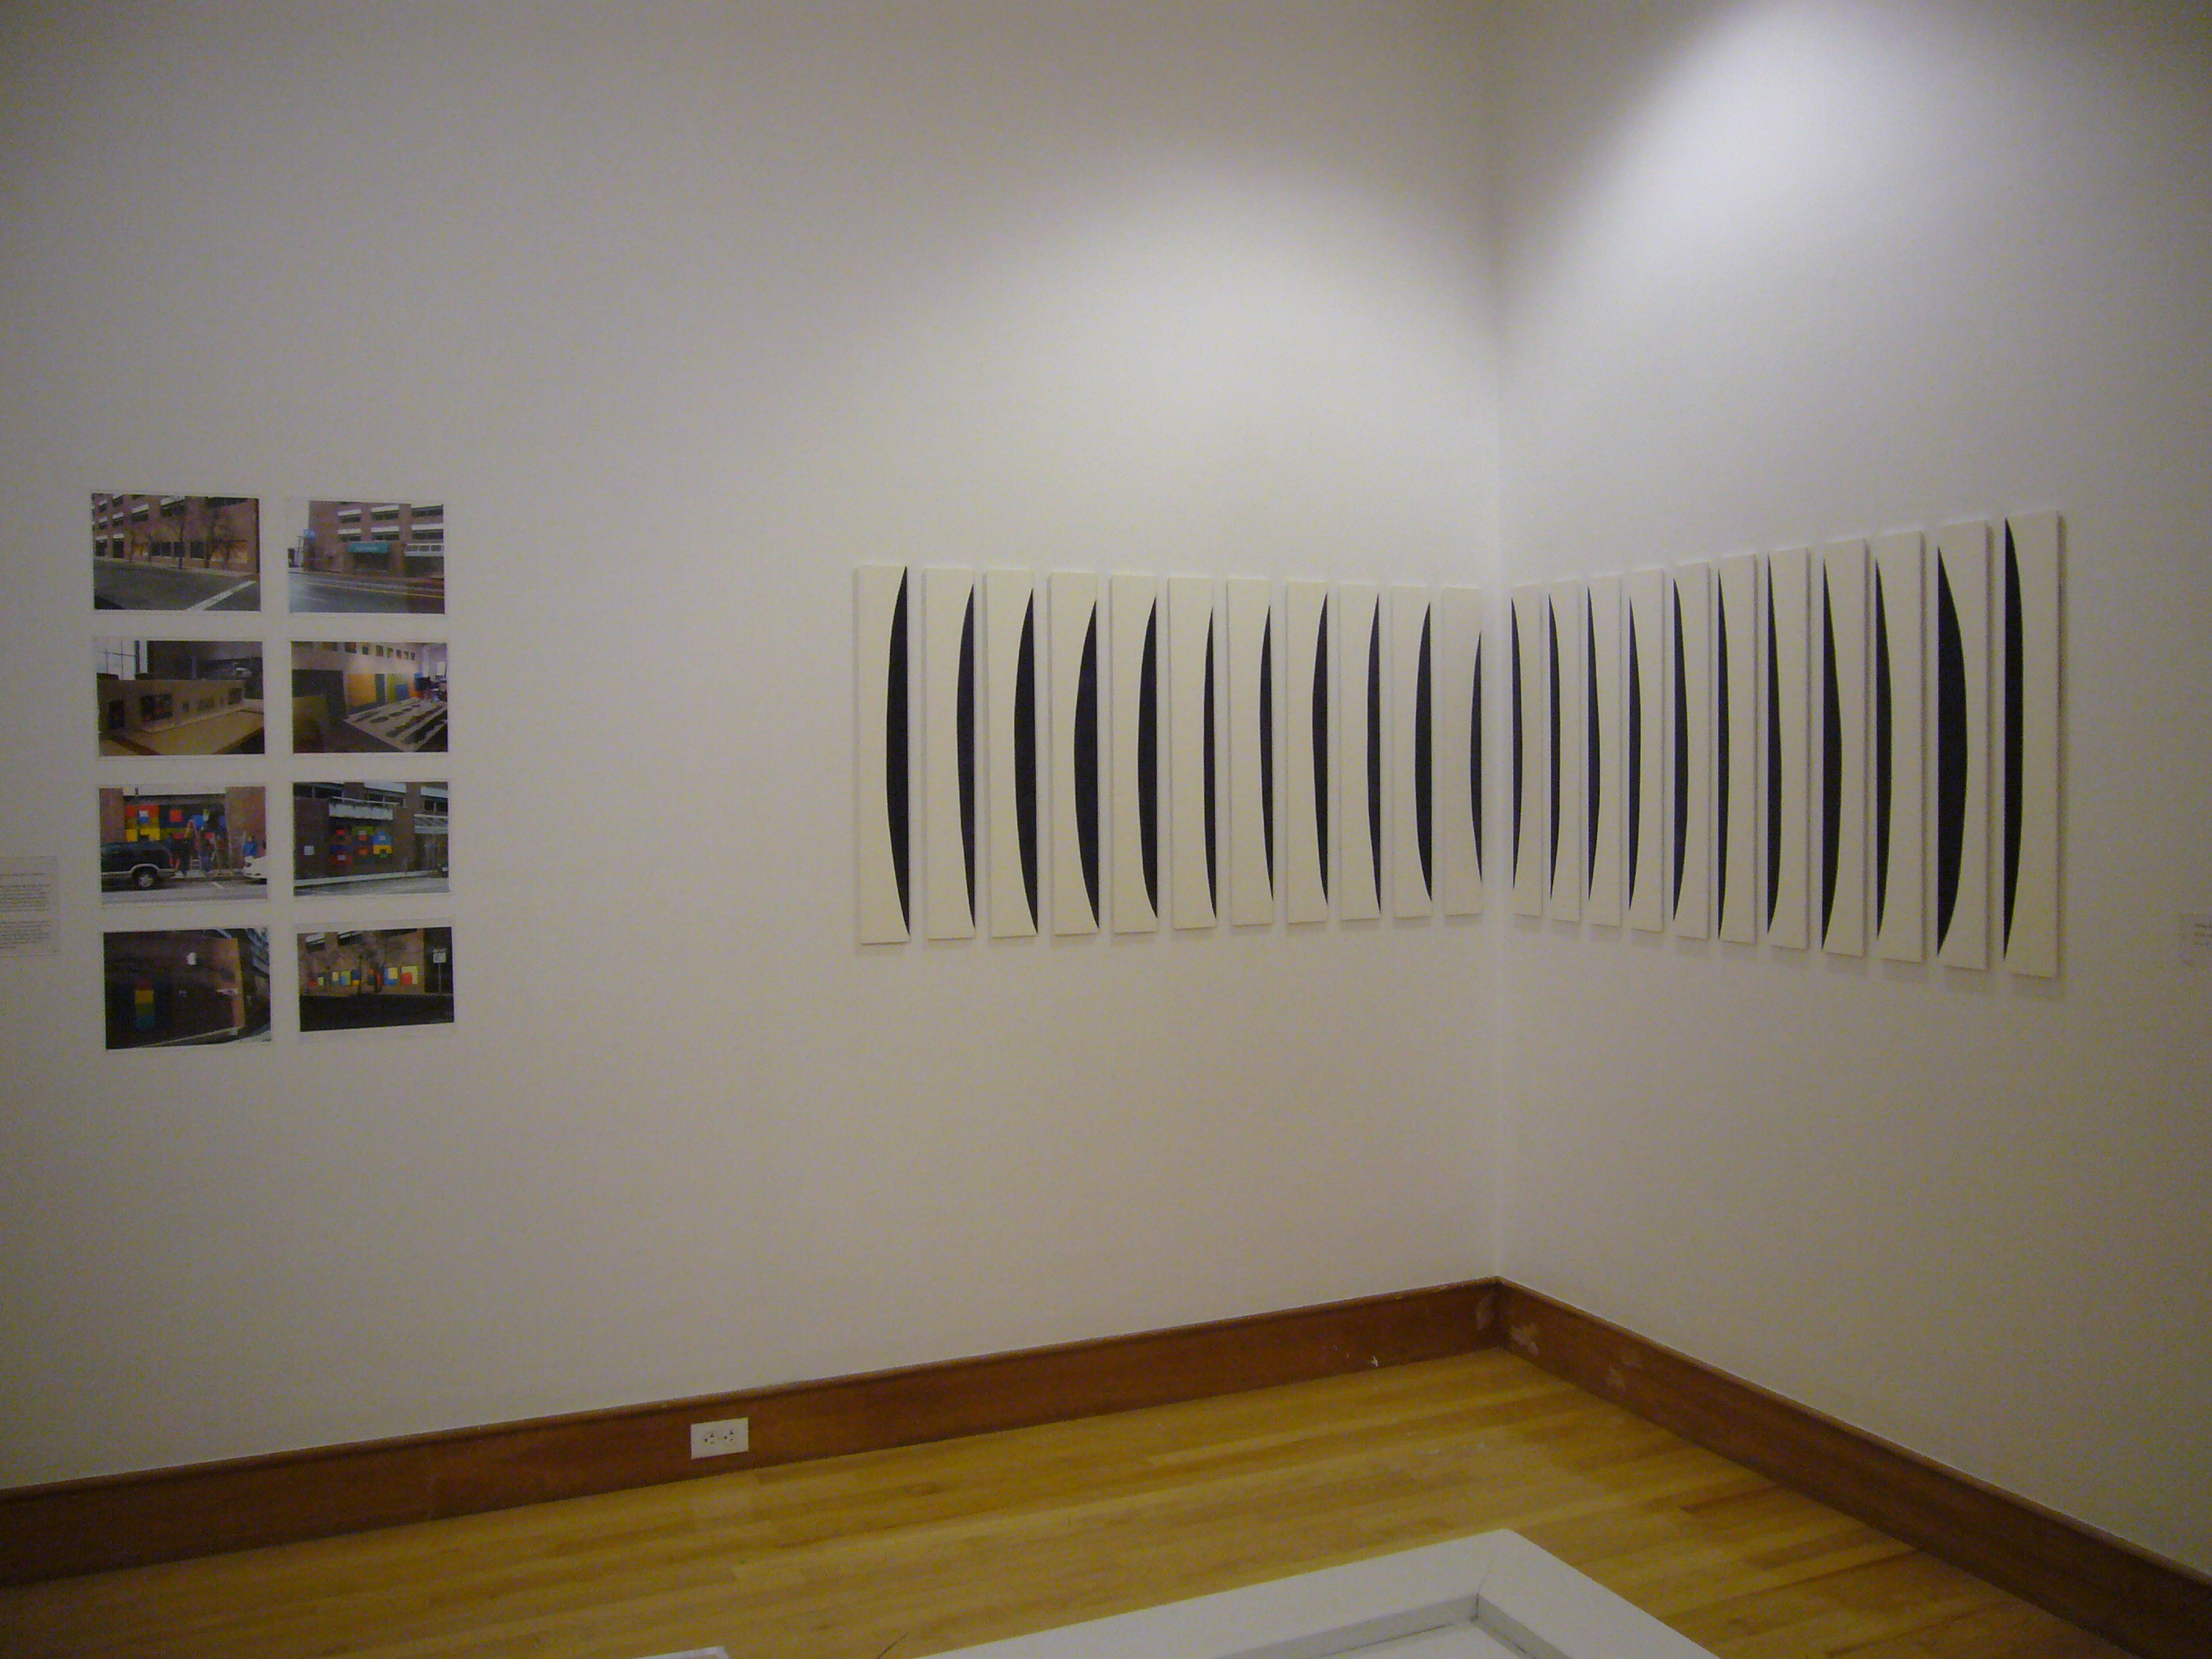 REVERIE_GalleryView_CornerConfiguration31Hx70Win_CAC_2013.jpg